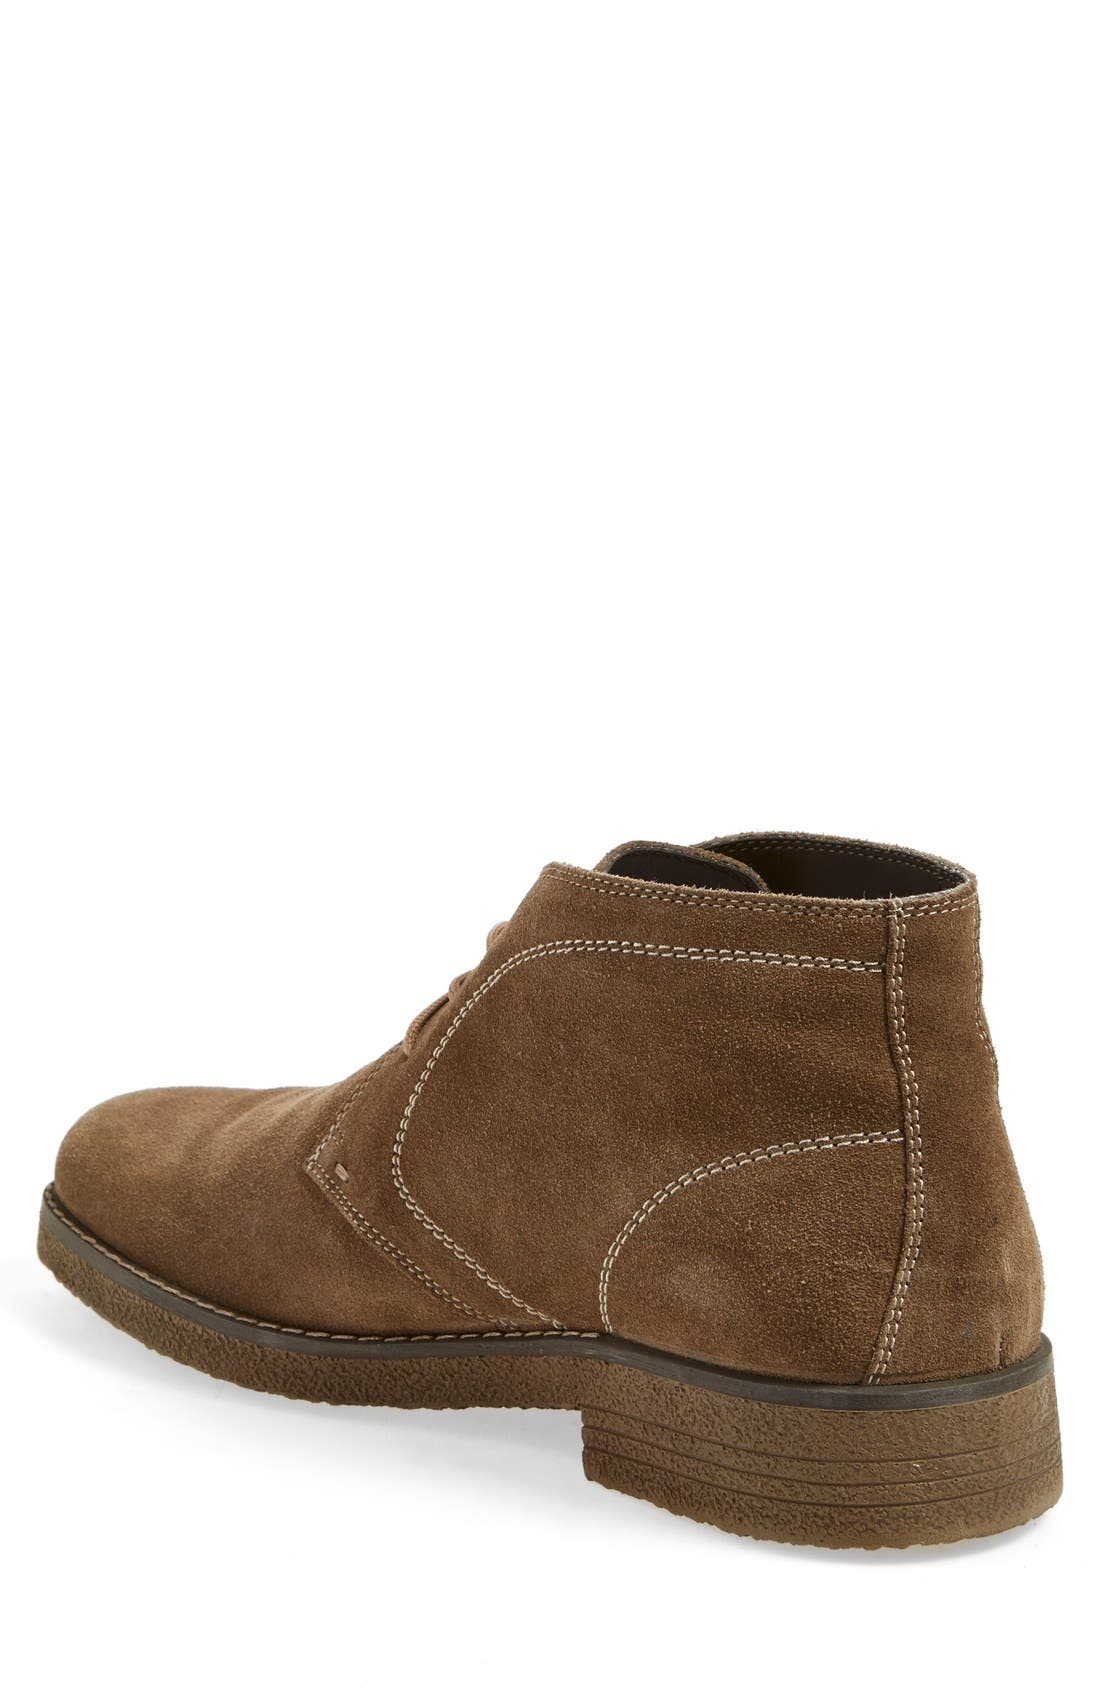 'Tyler' Chukka Boot,                             Alternate thumbnail 12, color,